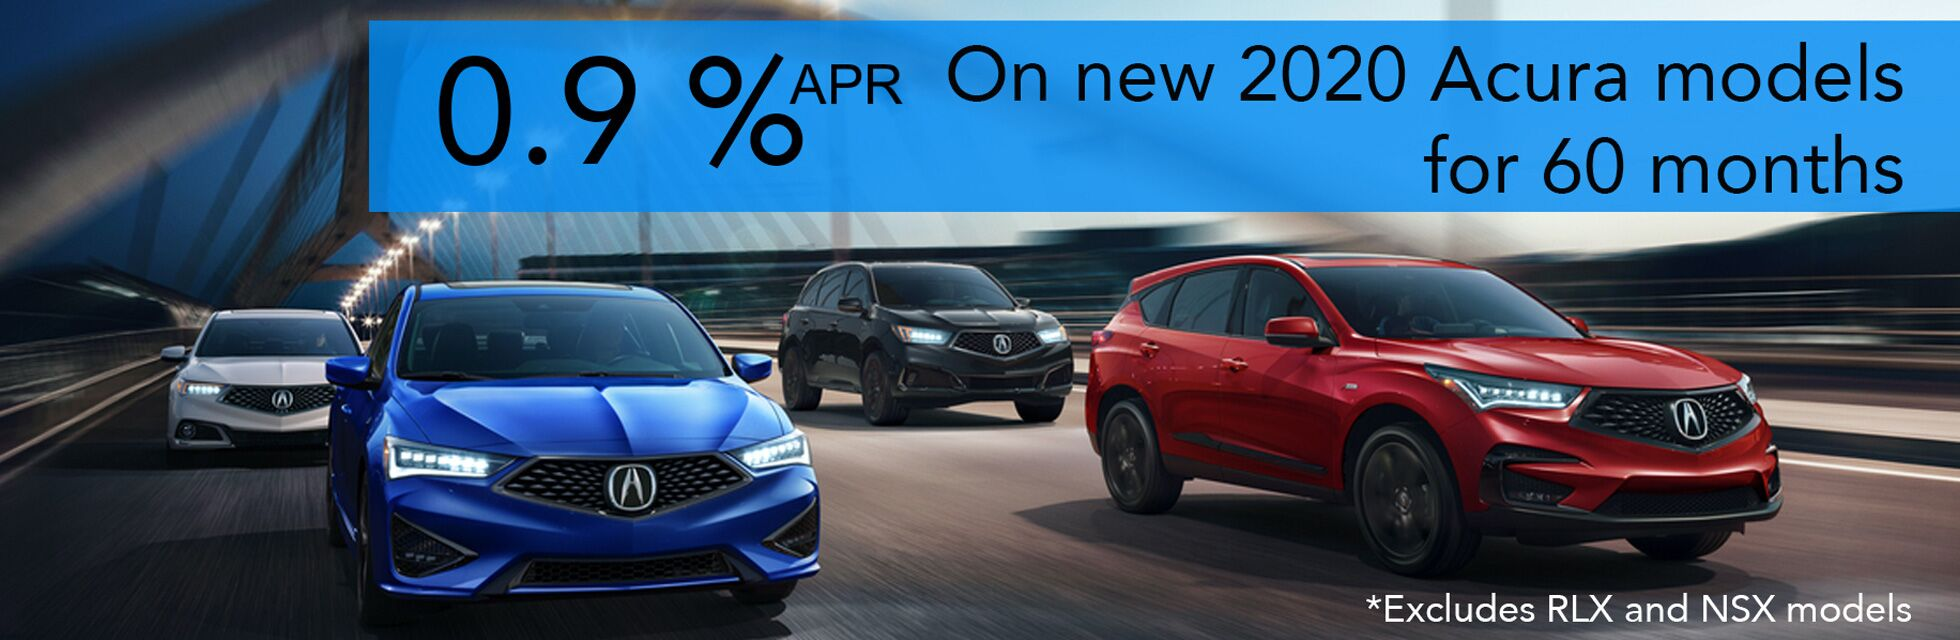 New Acura 0.9% APR Special